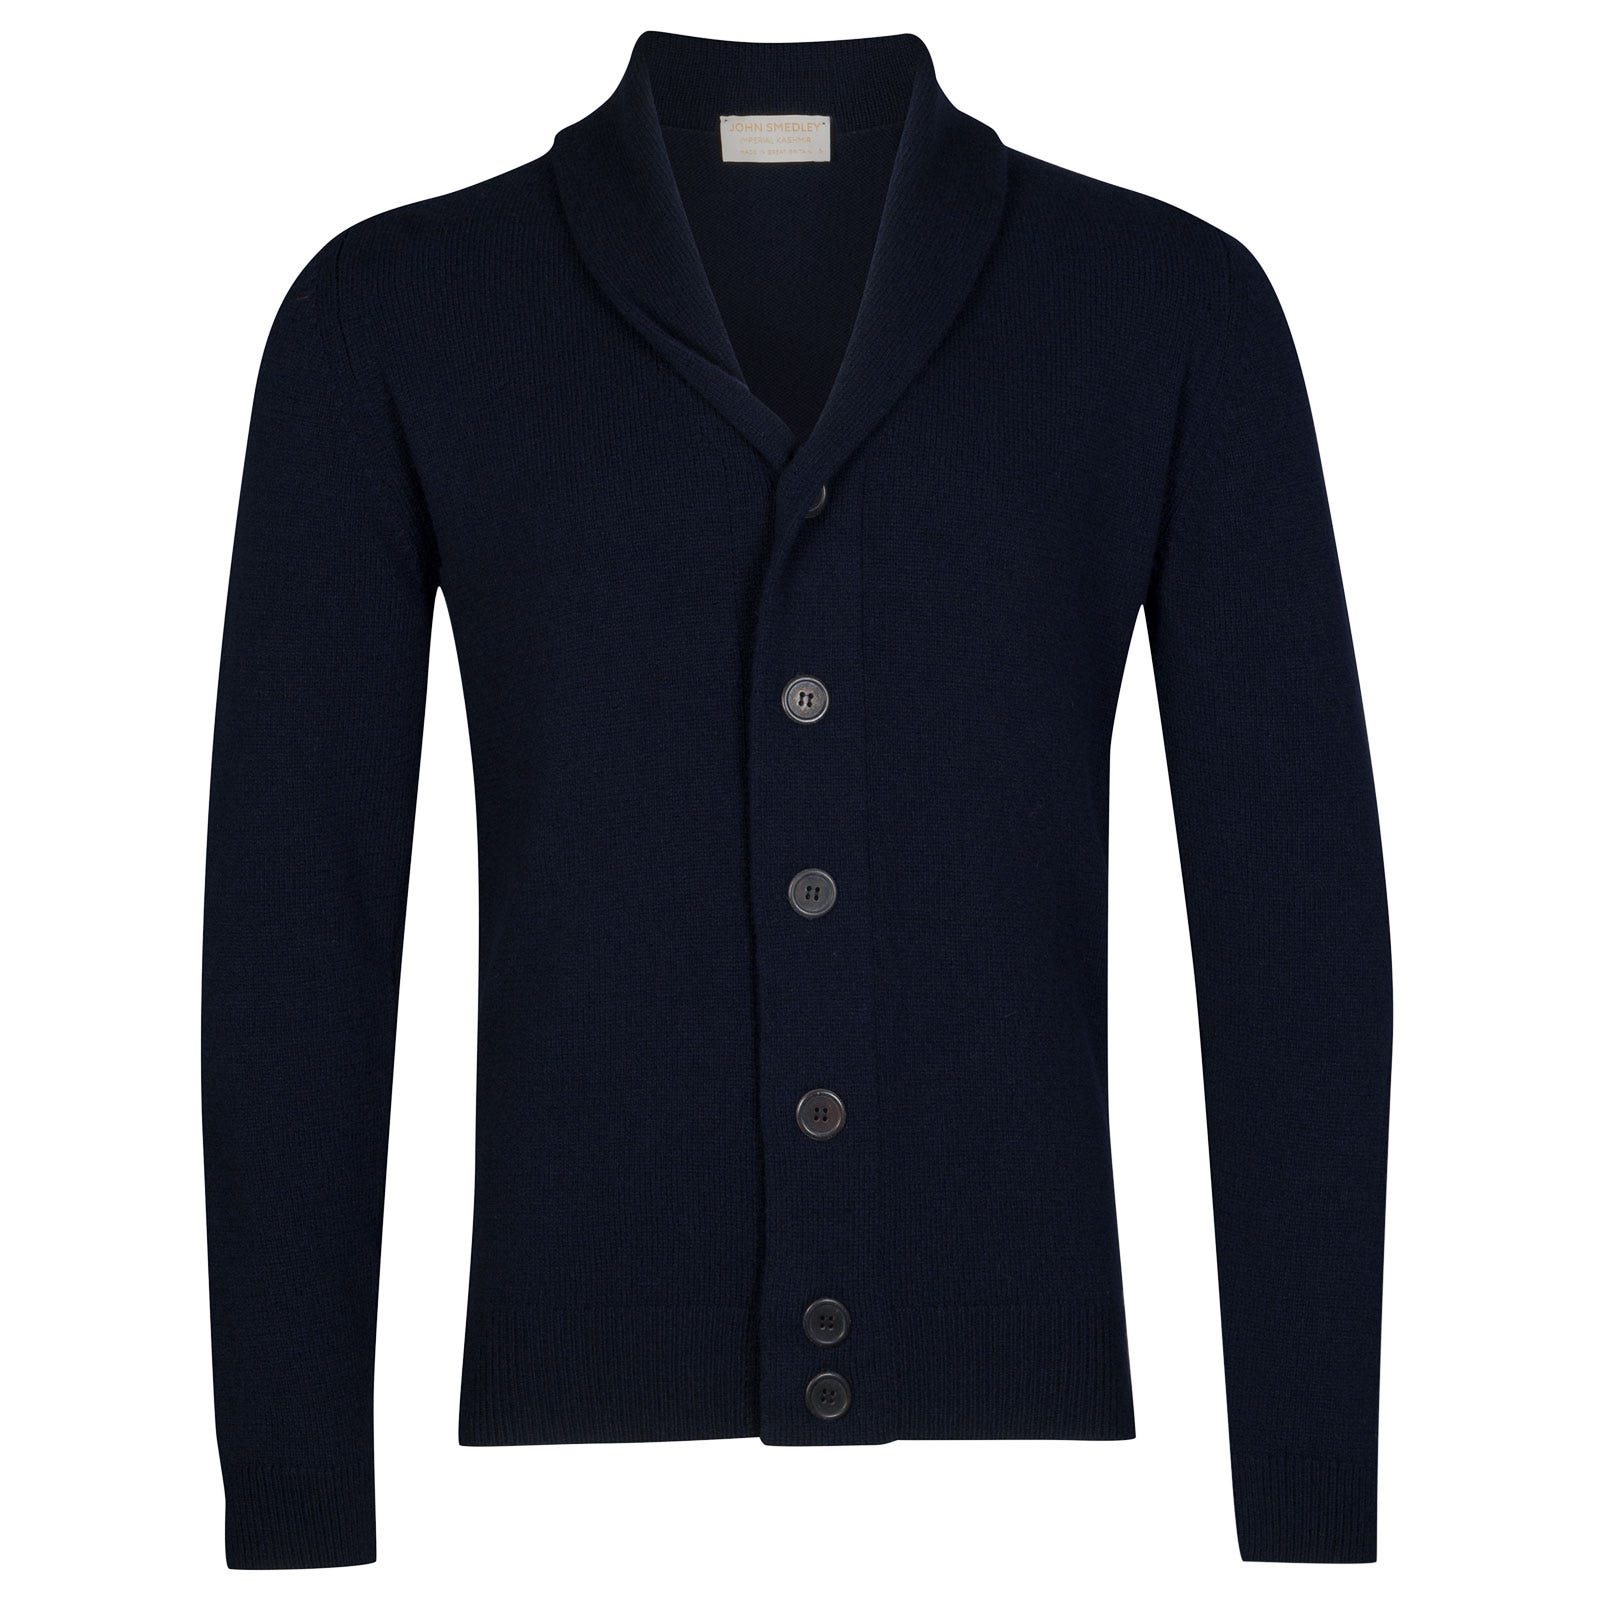 John Smedley patterson Wool and Cashmere Jacket in Midnight-S